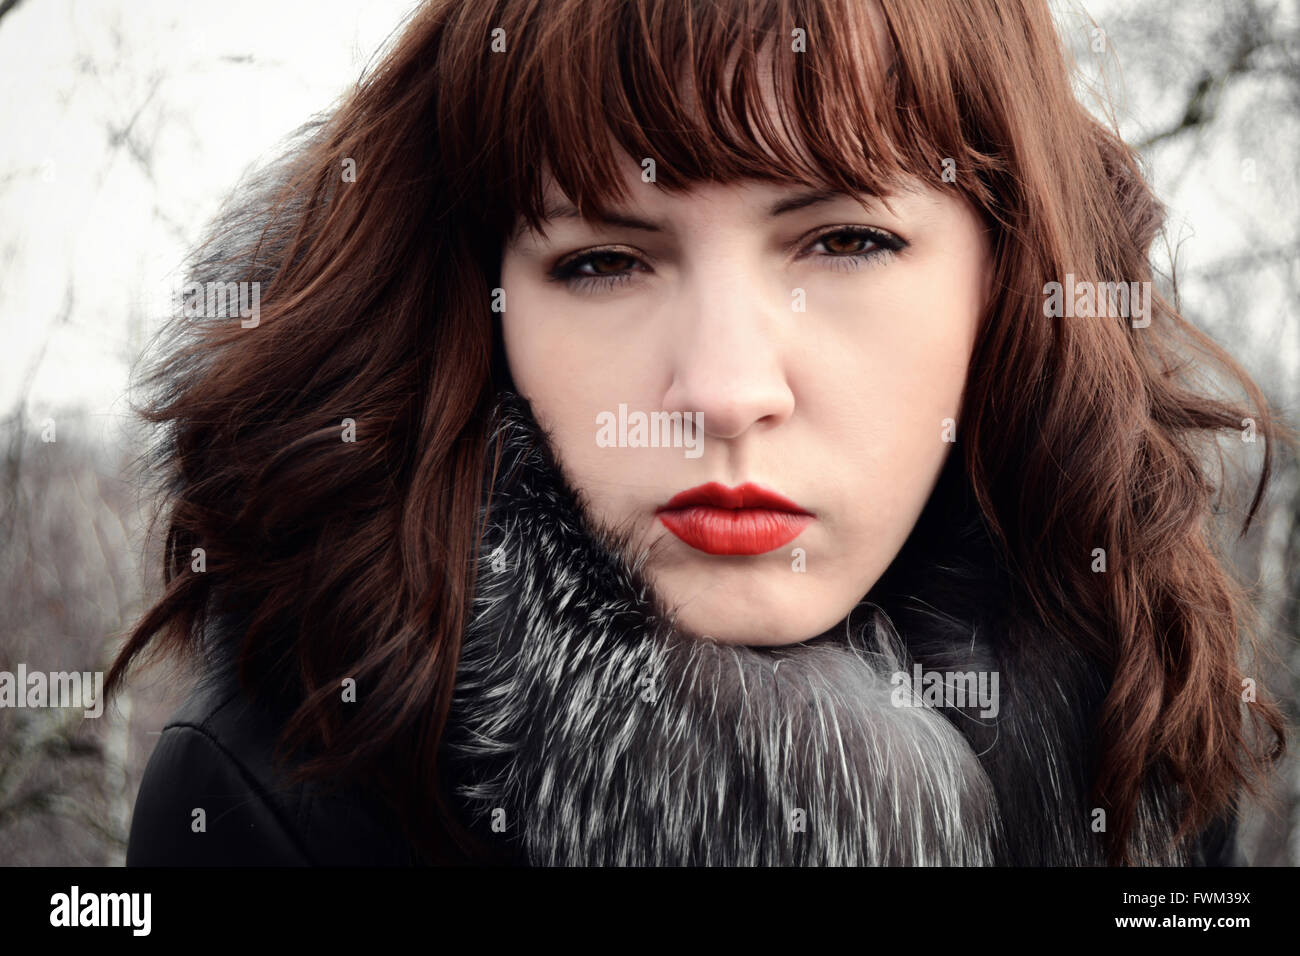 Portrait Of Beautiful Woman Wearing Fur Jacket - Stock Image